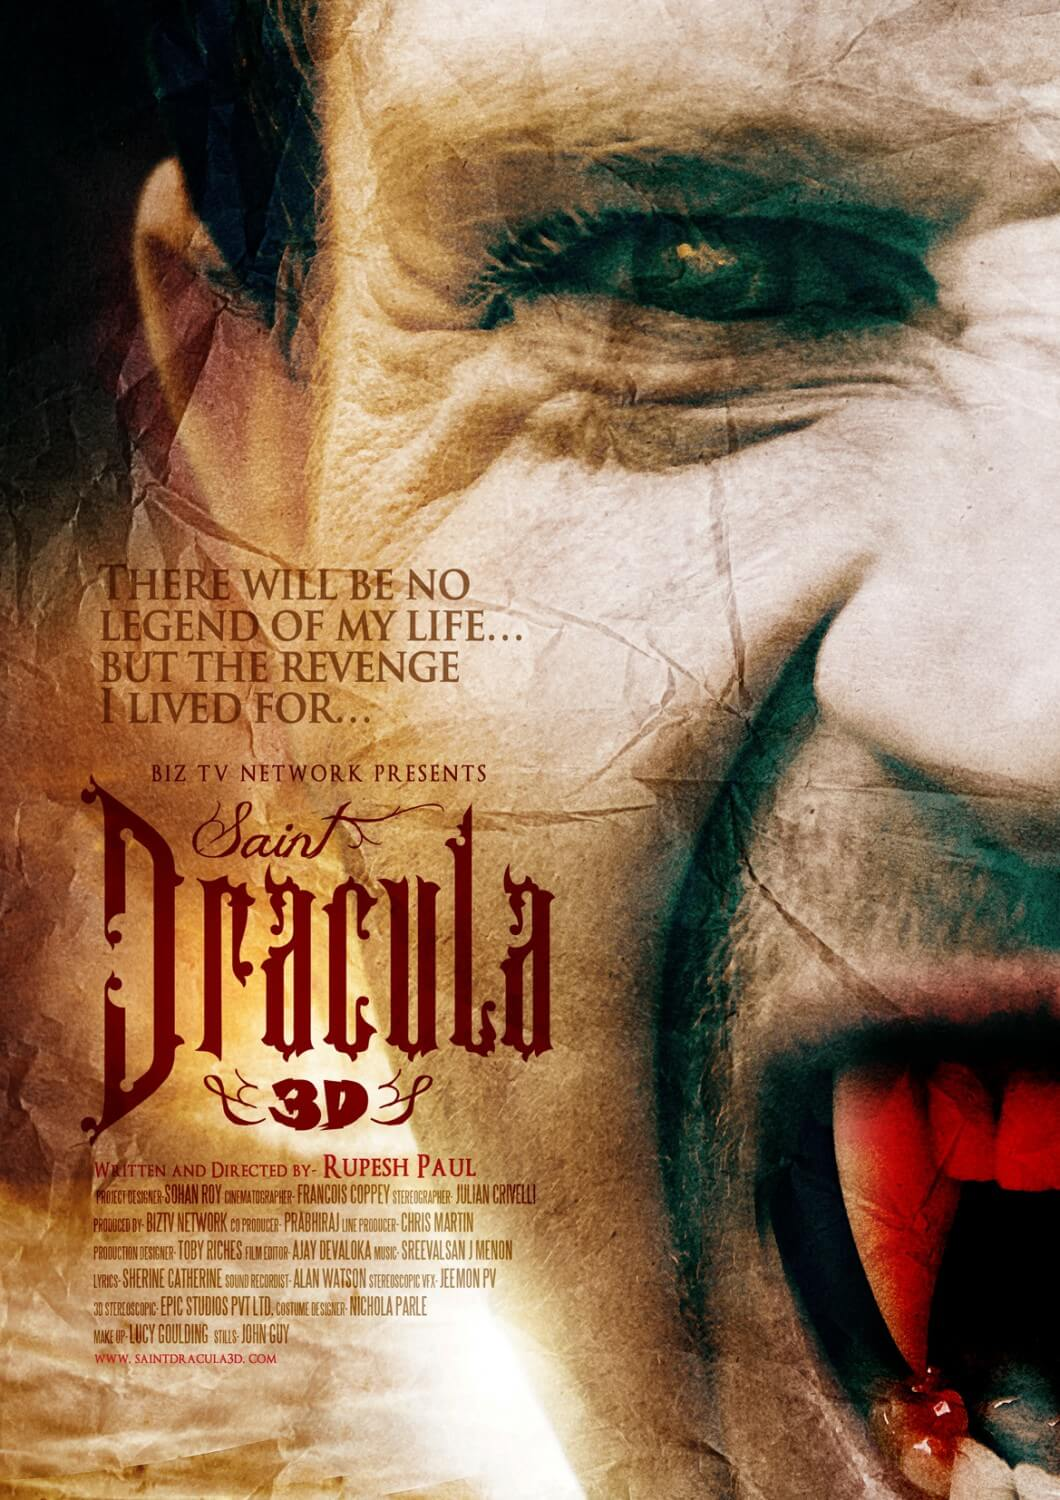 Saint Dracula New Trailer - Oscar 2013